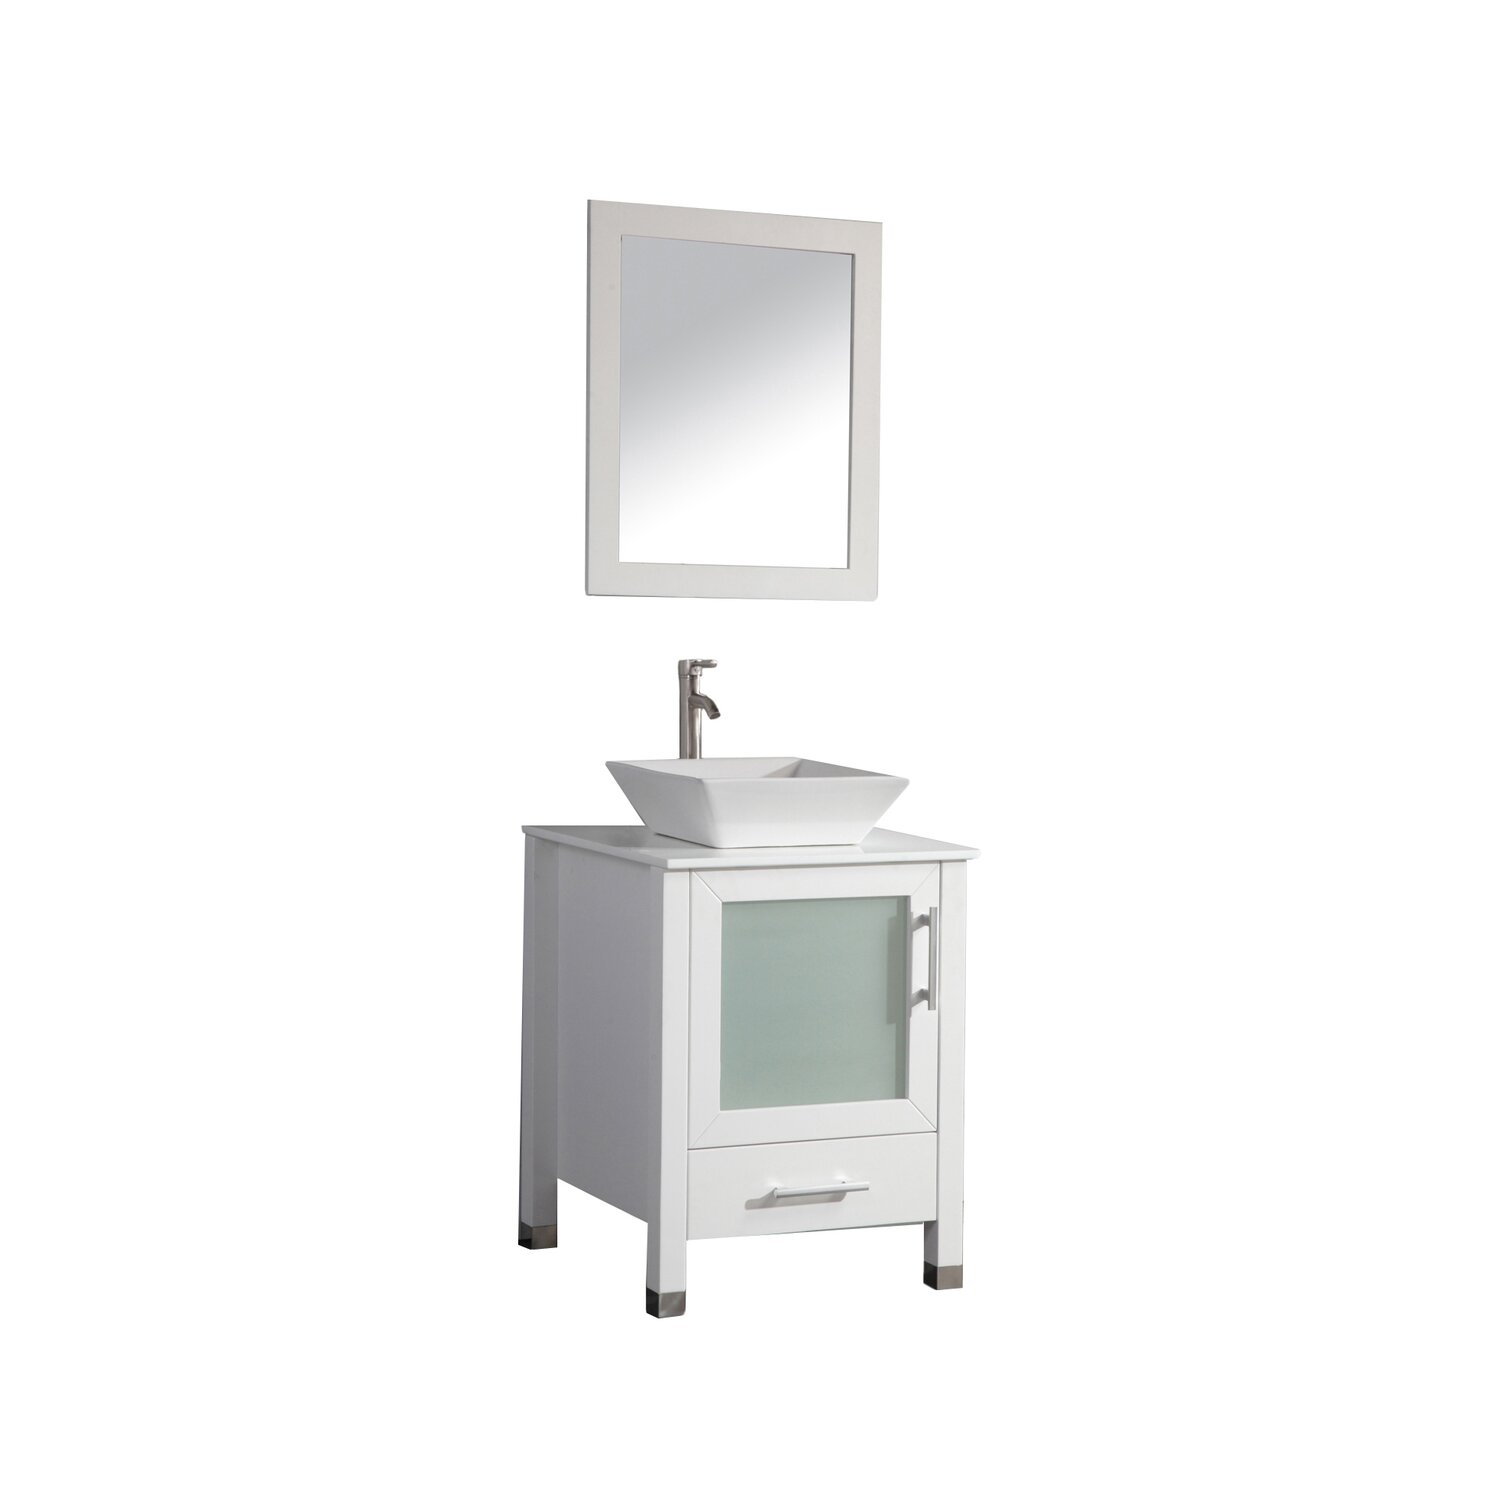 New MTDVanities Malta 18quot Single Sink Bathroom Vanity Set With Mirror